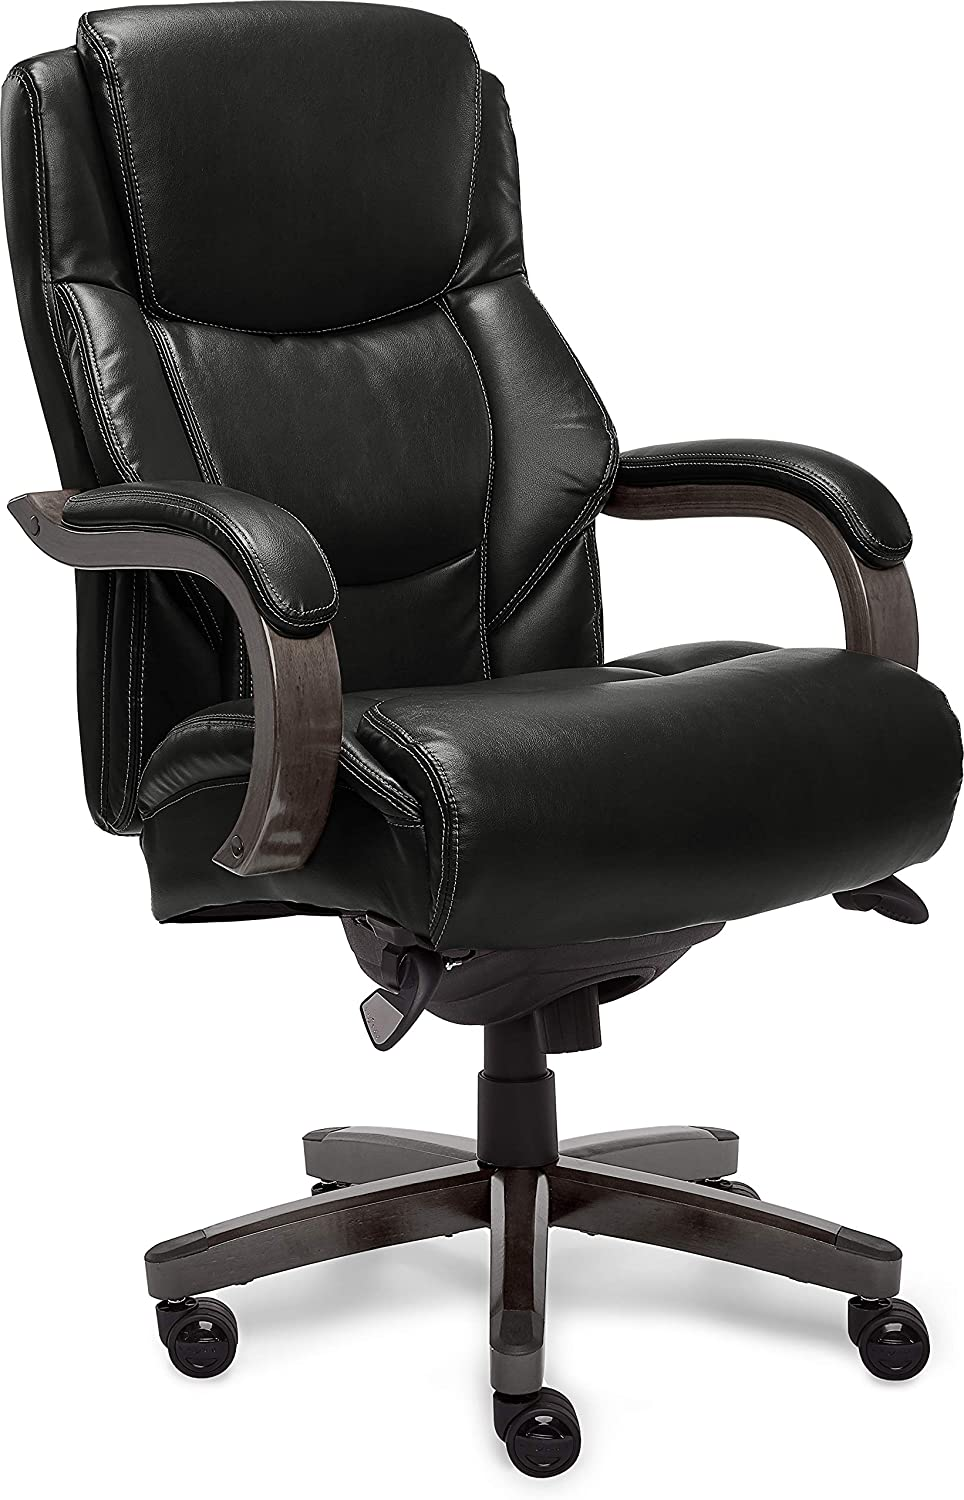 LaZBoy Delano Executive Office Chair, Big And Tall, Black And Gray